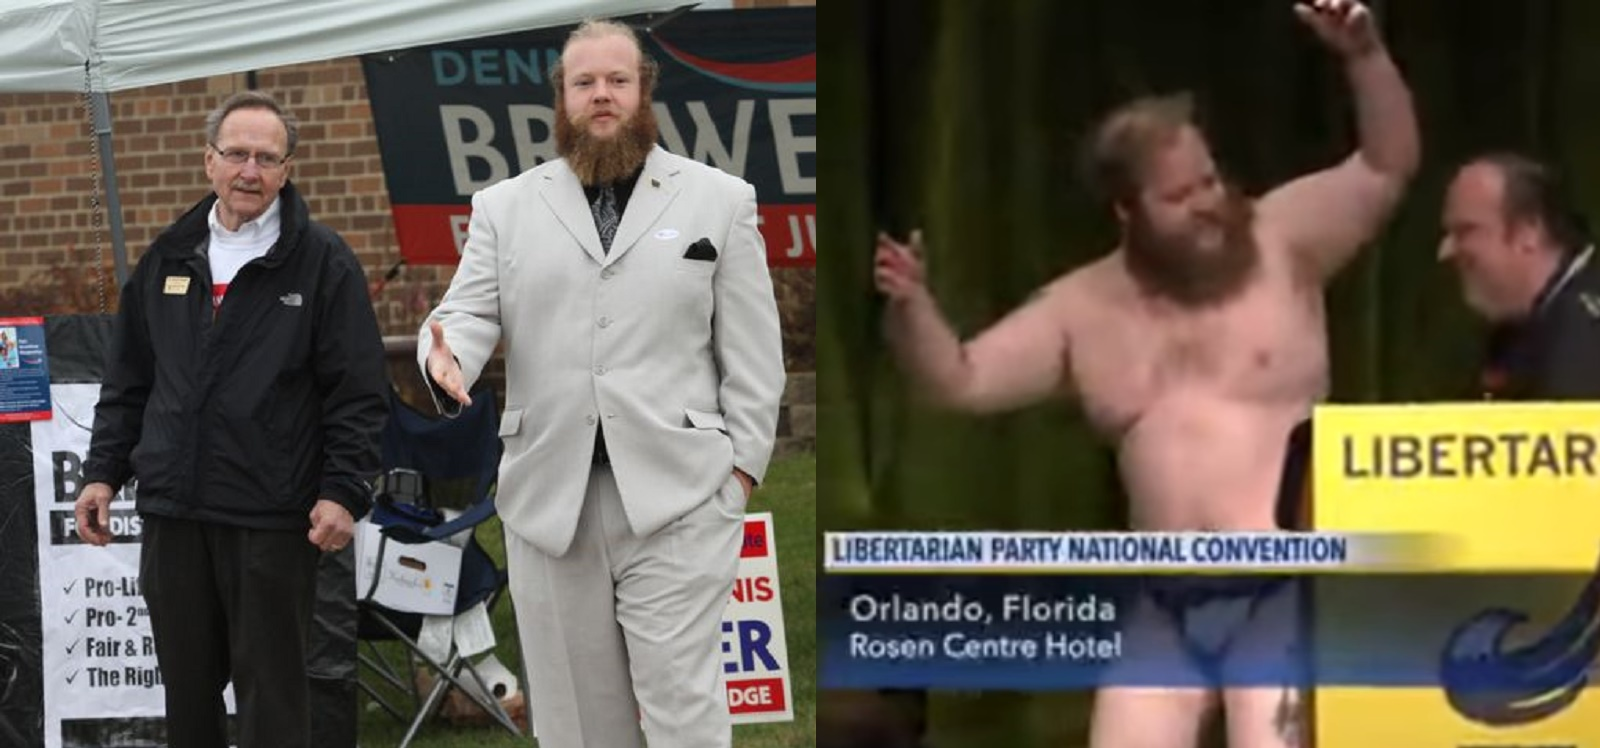 Watch: Libertarian candidate strips naked on live TV